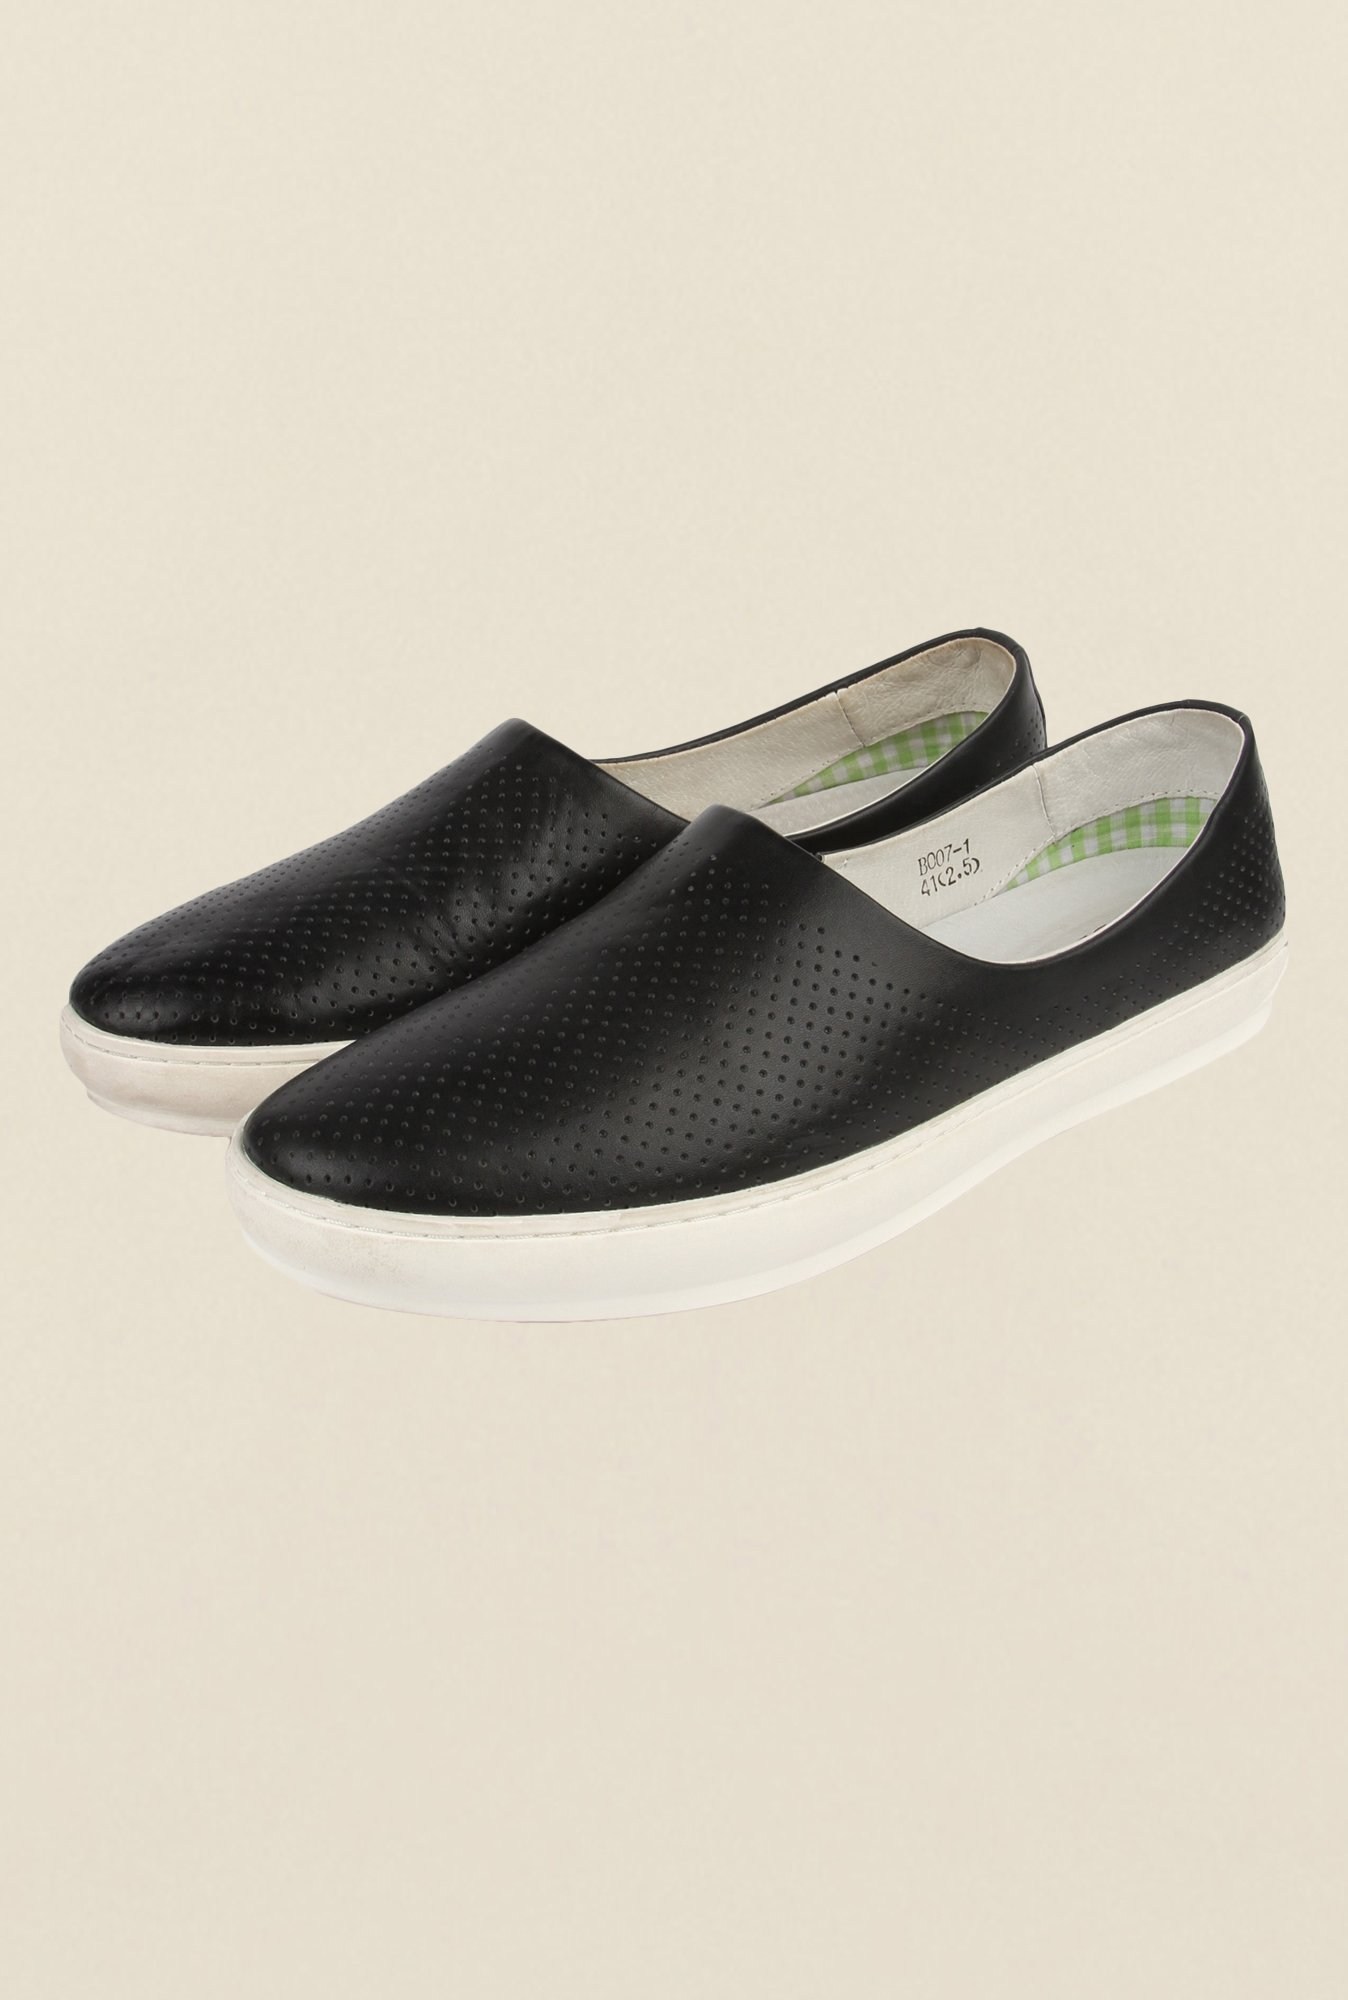 Cobblerz Black Leather Casual Shoes